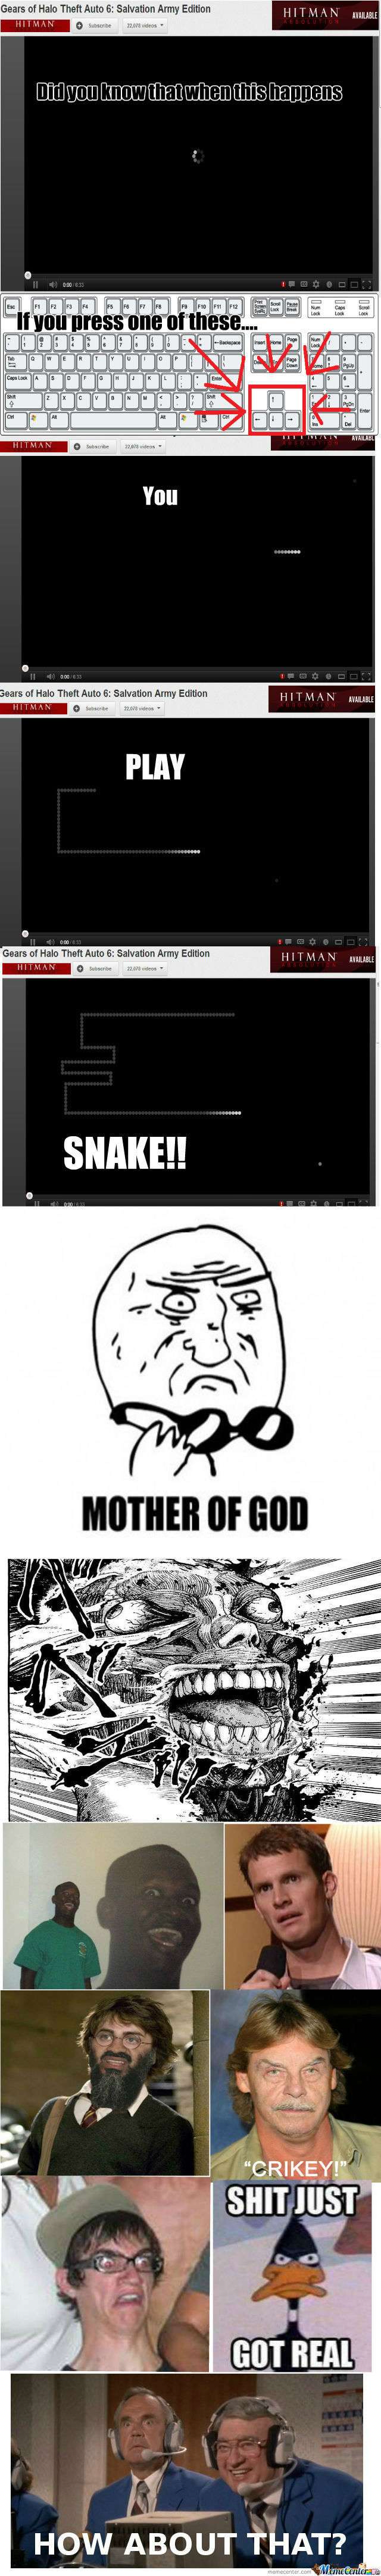 [RMX] Playing Snake on Youtube when buffering